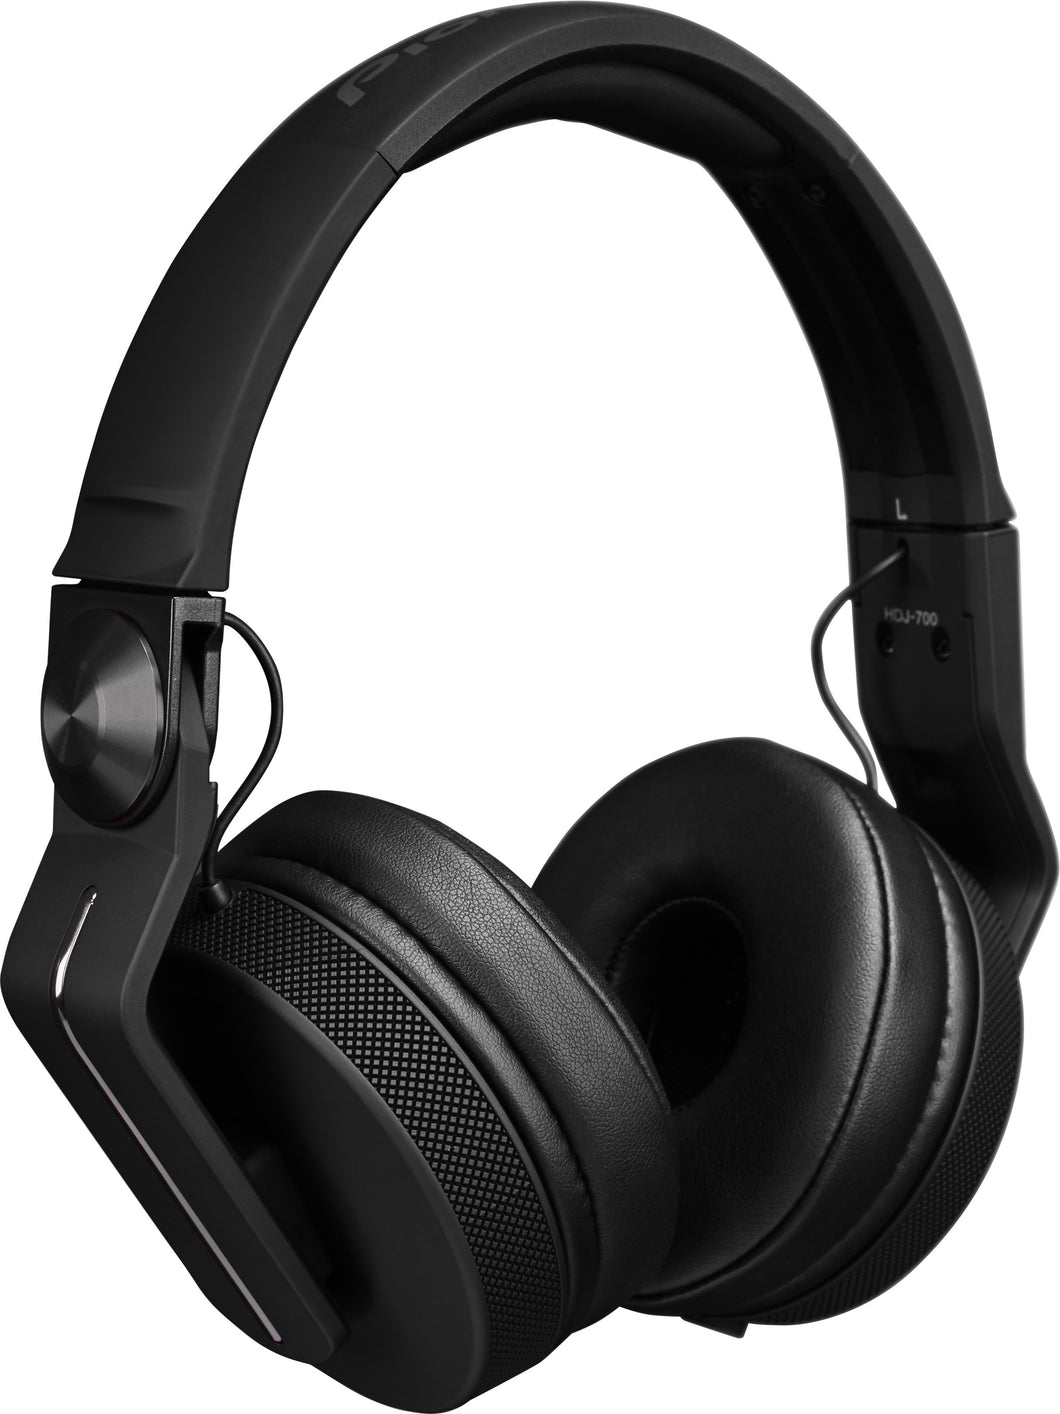 HDJ-700-K:DJ Headphone